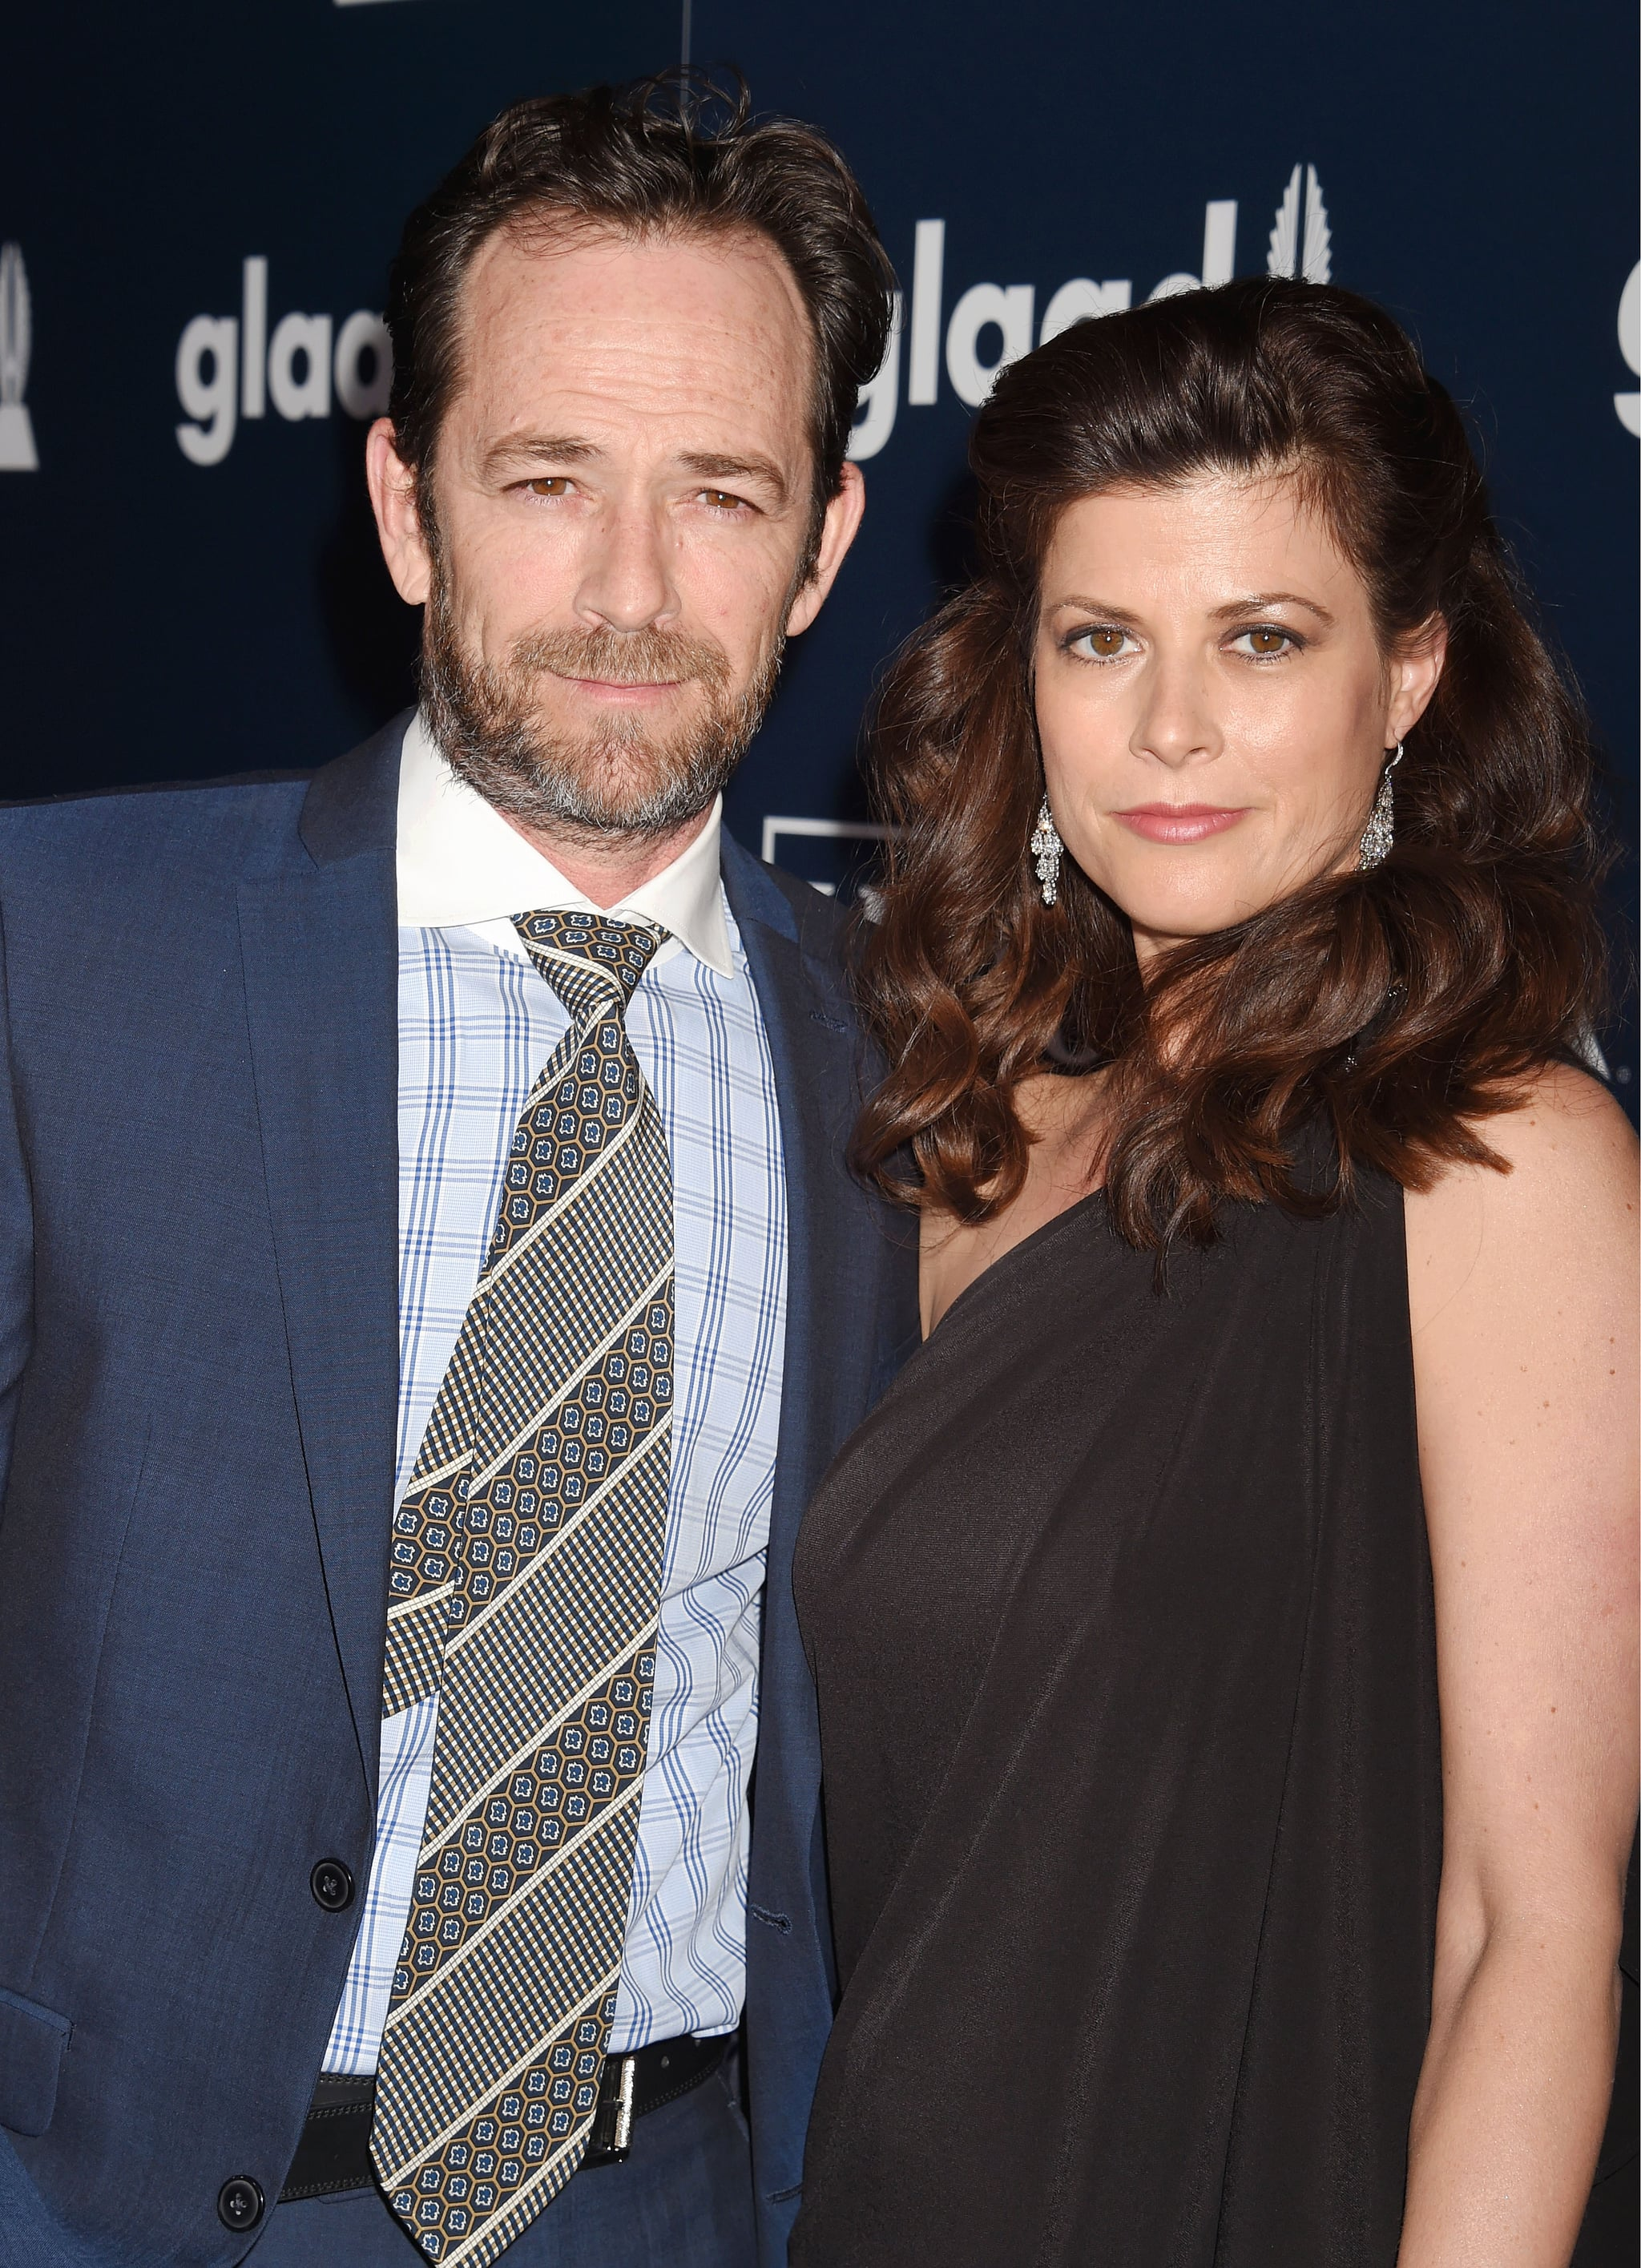 BEVERLY HILLS, CA - APRIL 01:  Actor Luke Perry (L) and guest attend the 28th Annual GLAAD Media Awards in LA at The Beverly Hilton Hotel on April 1, 2017 in Beverly Hills, California.  (Photo by Jeffrey Mayer/WireImage)